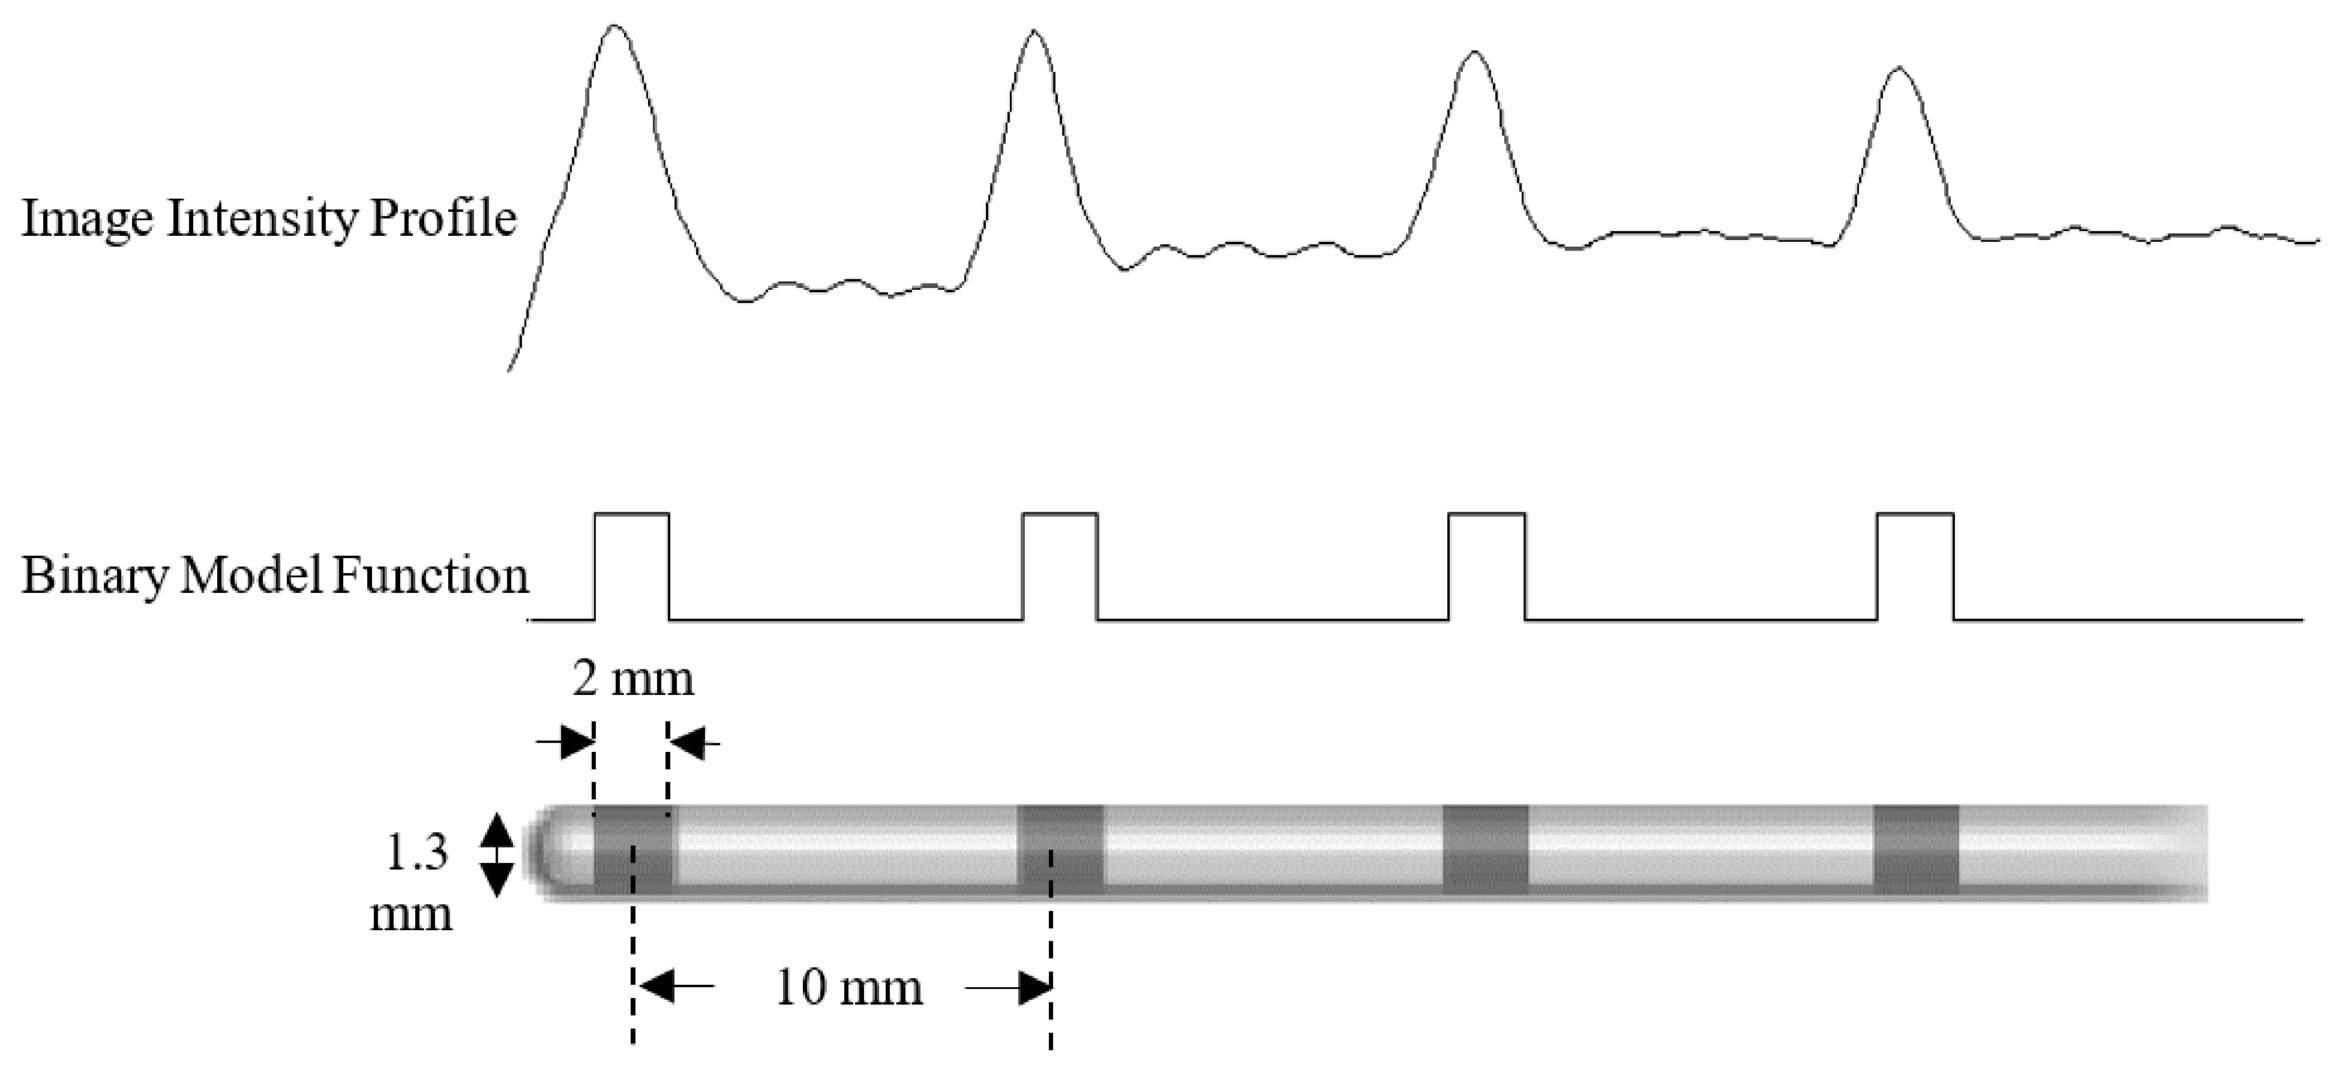 Validation of an automatic algorithm to identify NeuroPace